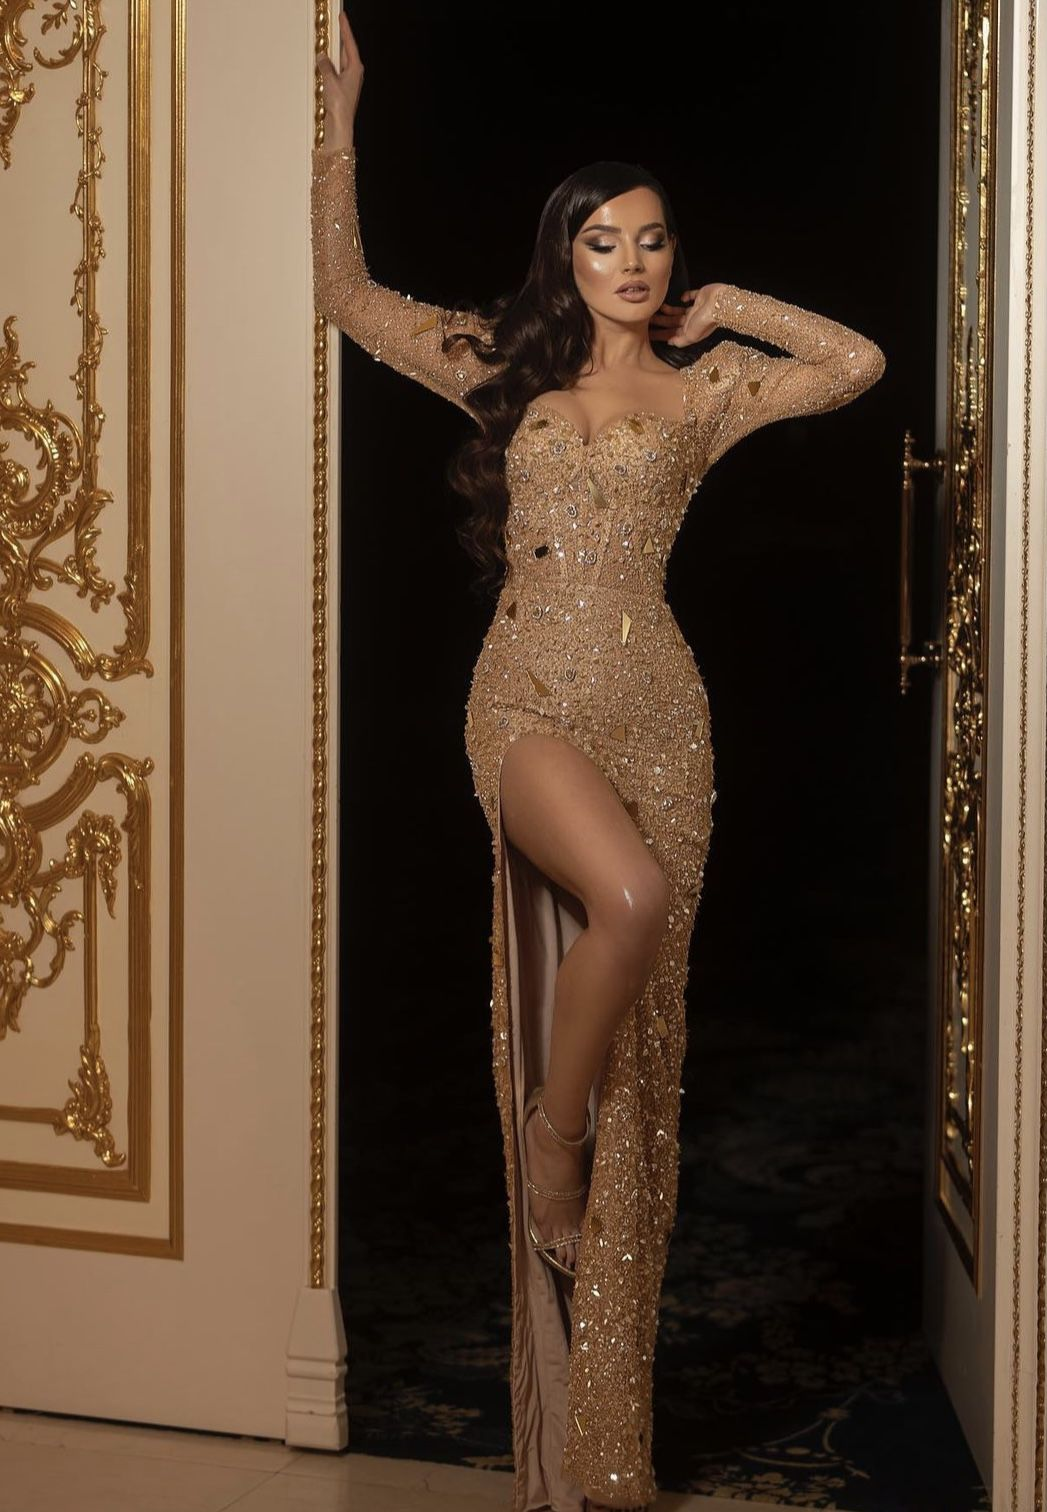 Ramaa Haute Couture  Gold Size 4 Custom Cocktail Dress on Queenly